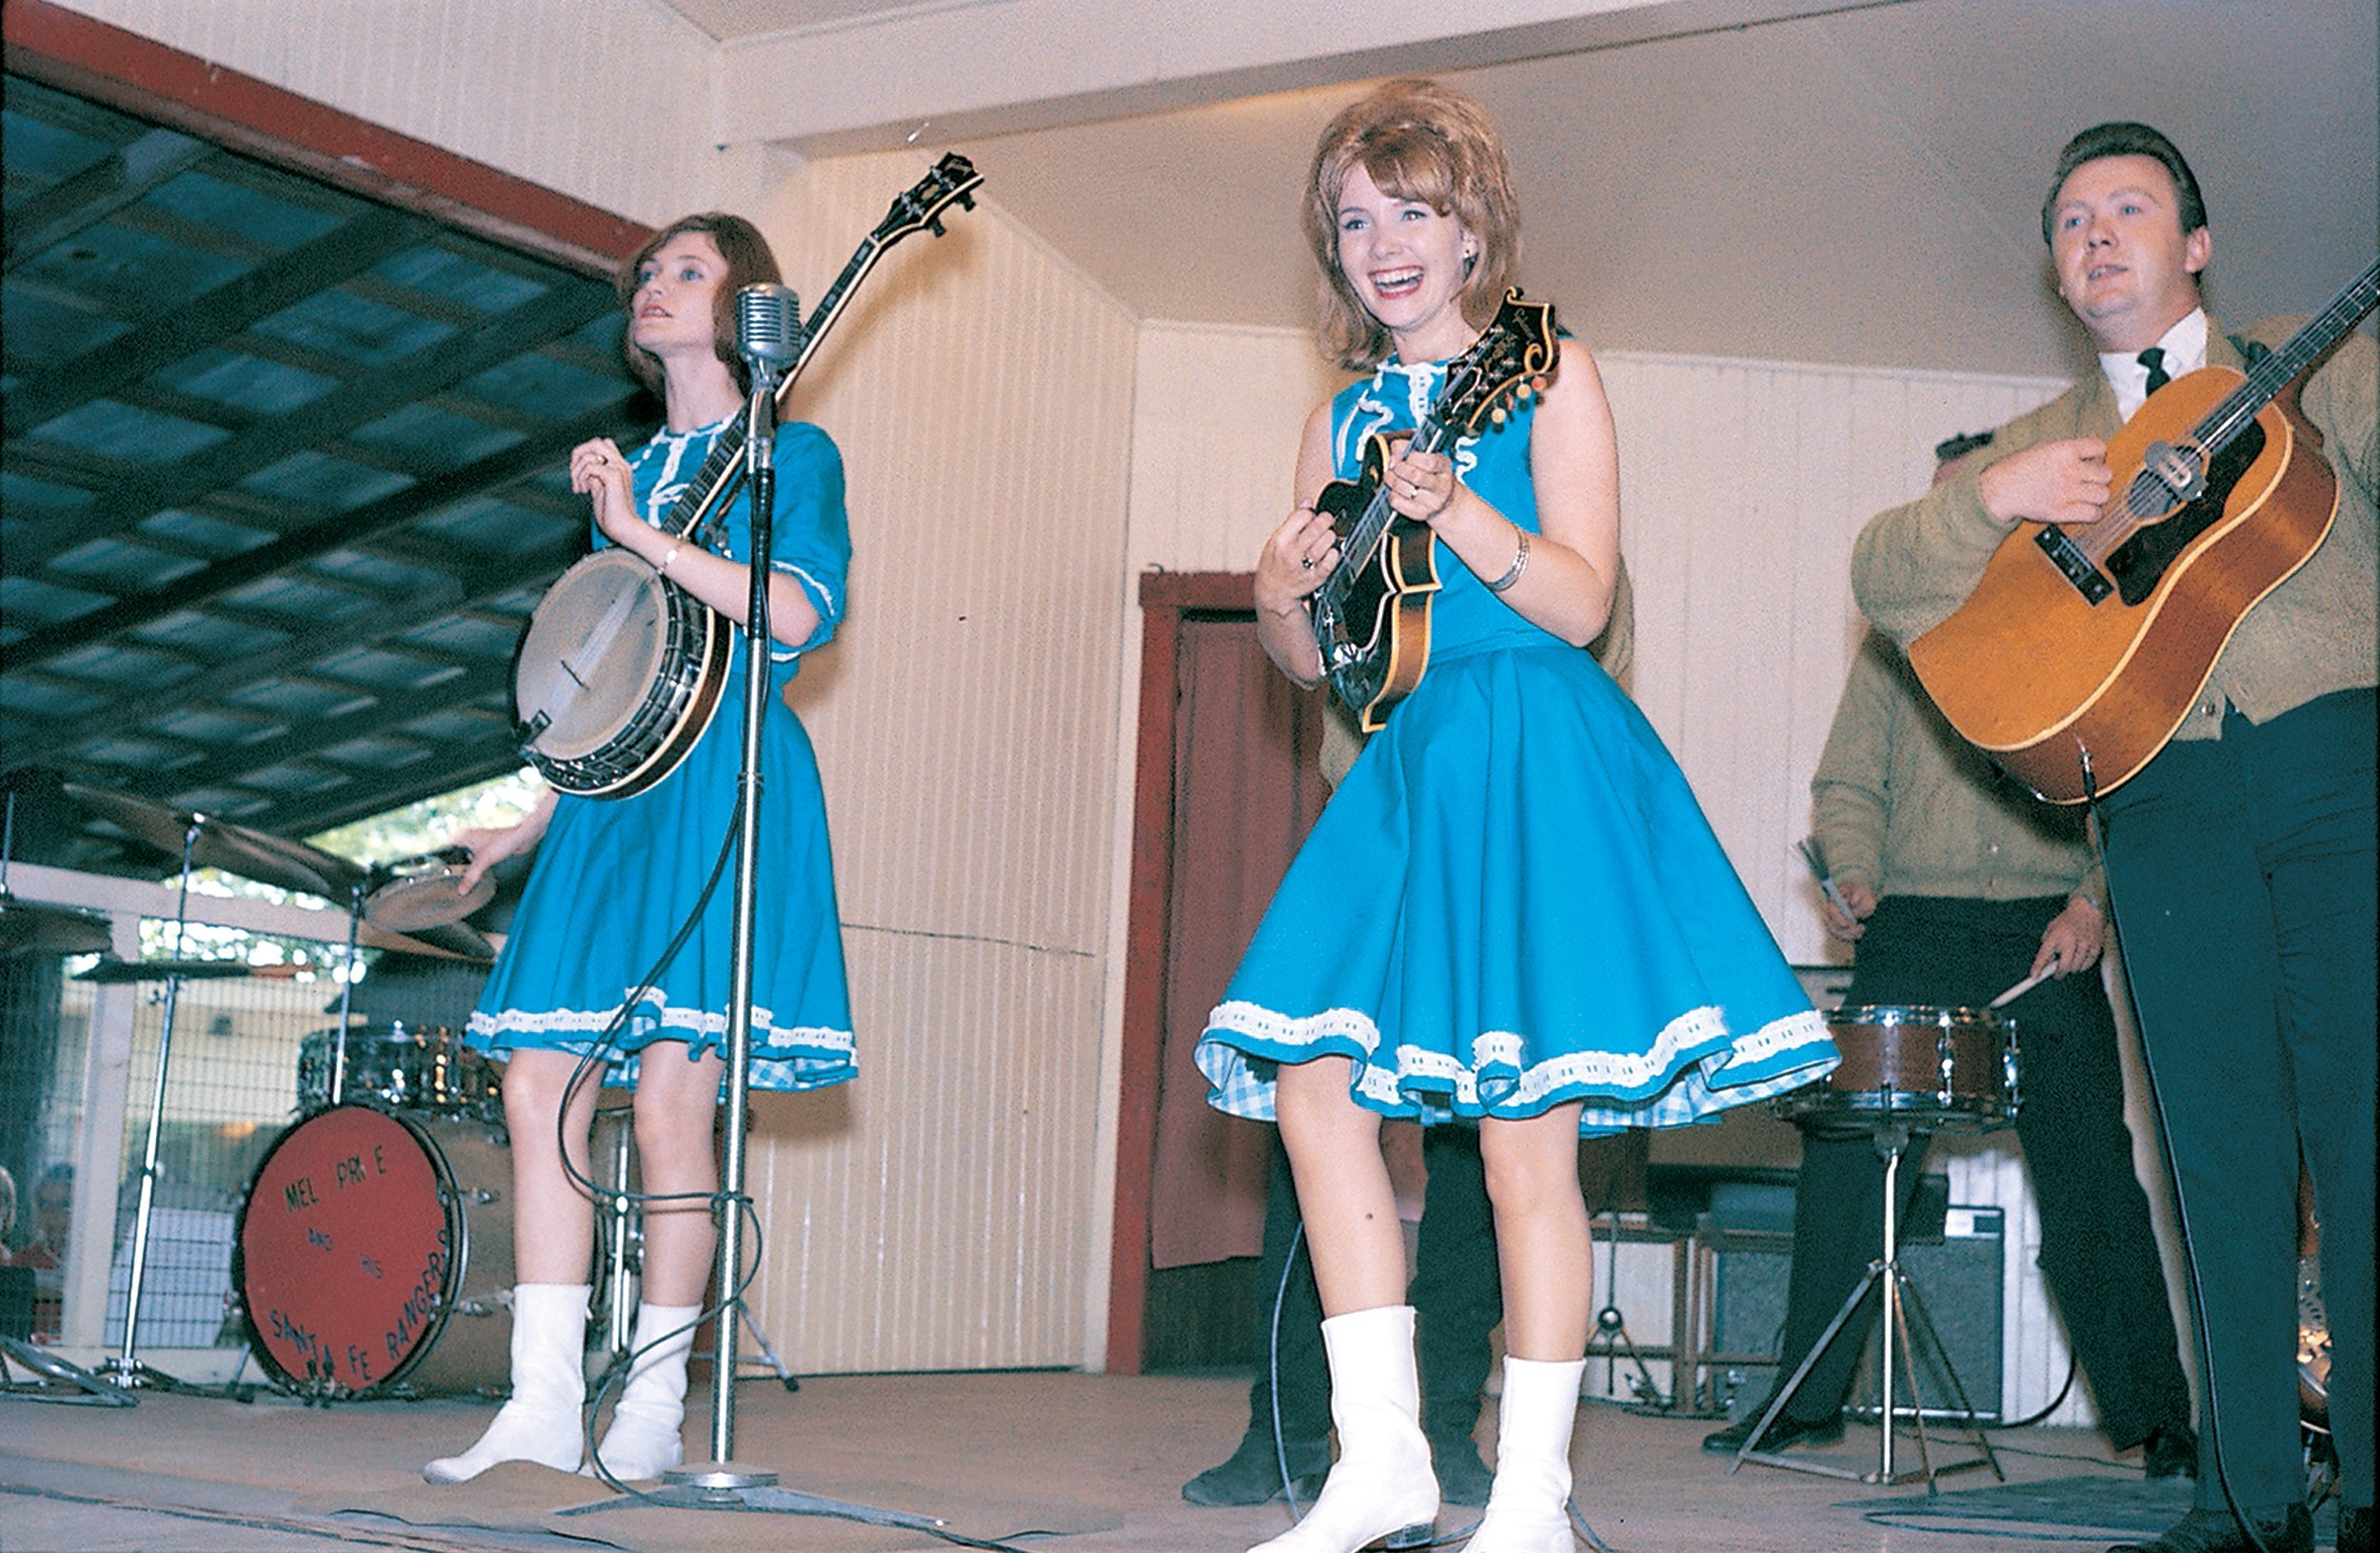 These Badass Bluegrass Sisters Ruled DC's Honky-Tonk Bars